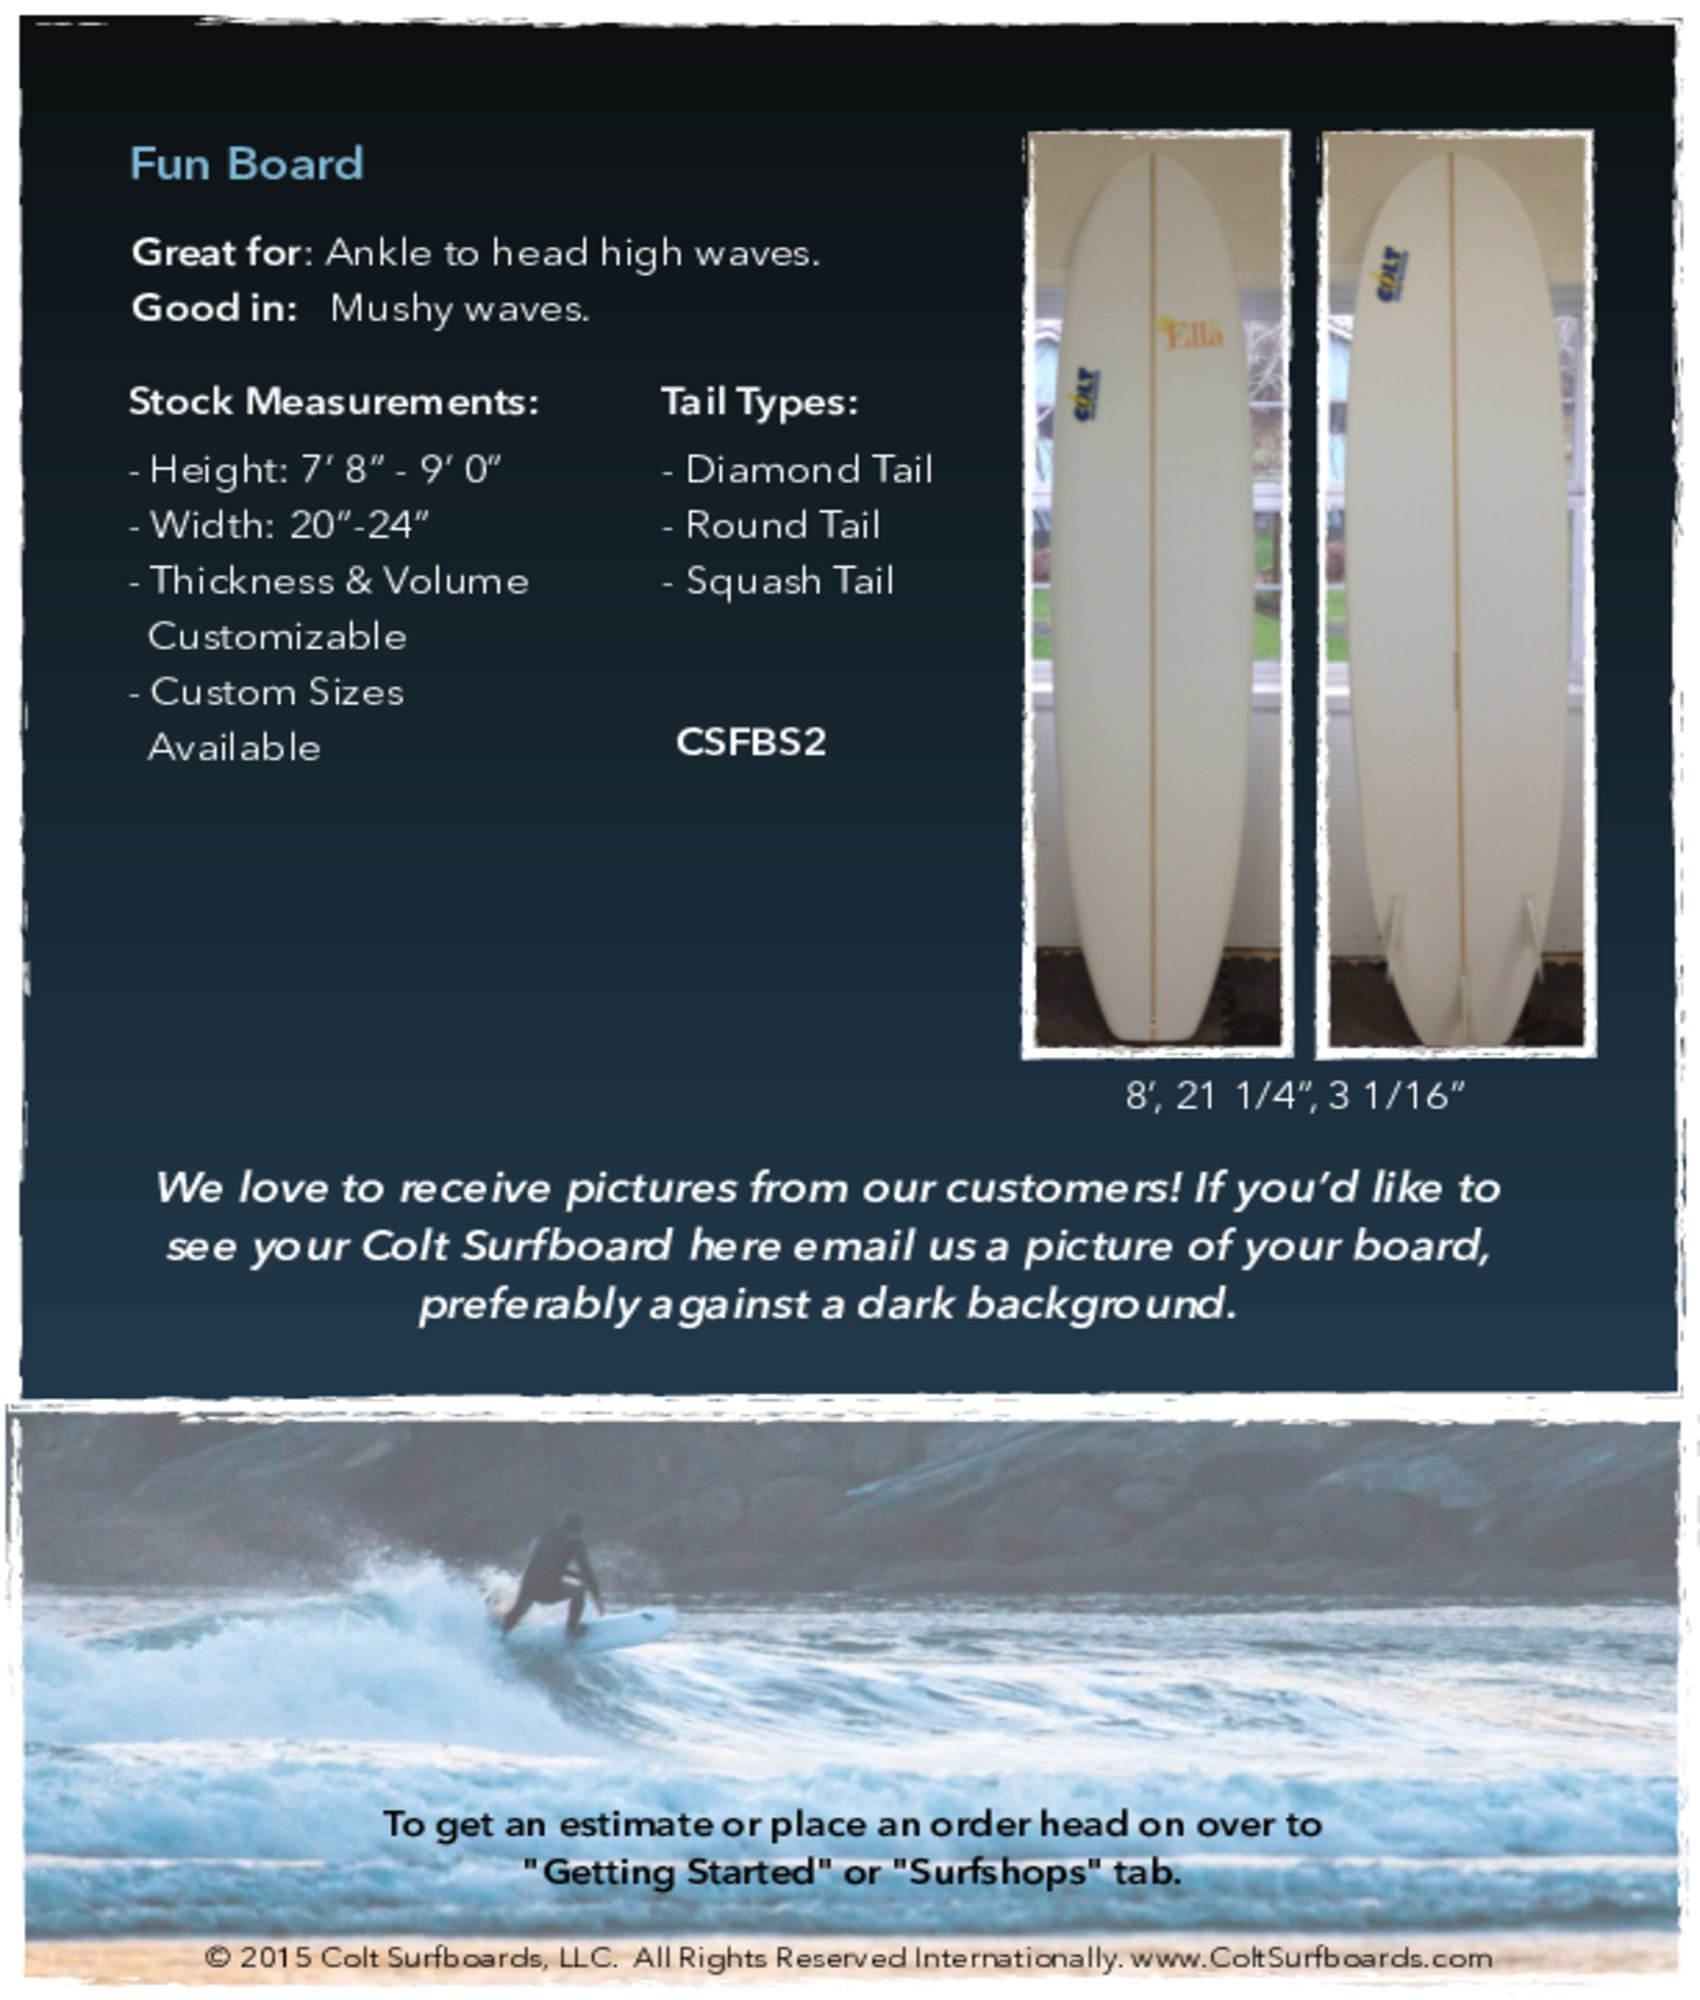 Fun_board_surboards_tab © 2015 Colt Surfboards LLC All rights reserved internationally 5